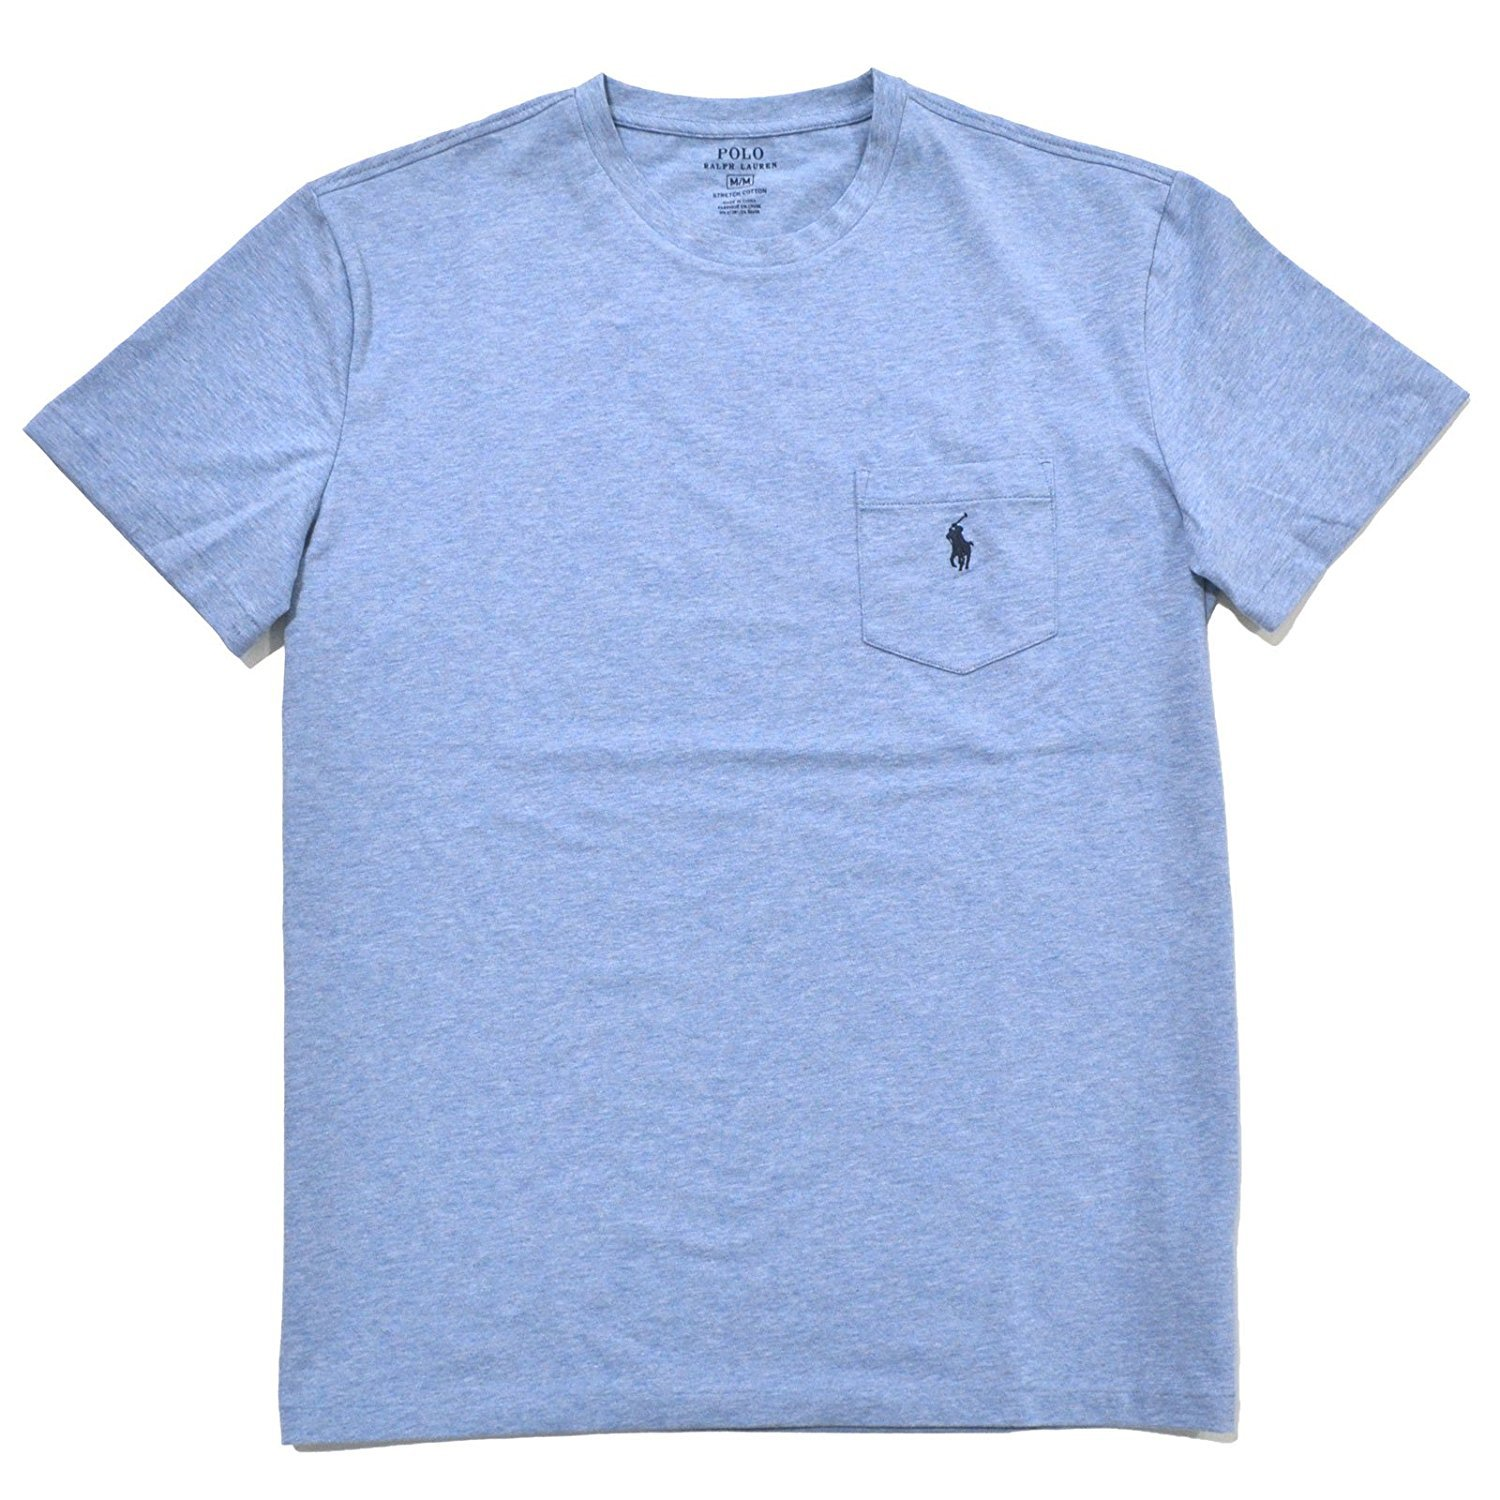 db27b8b4b RALPH LAUREN Polo Mens Stretch Cotton Pocket T-Shirt (Small, Jamaica Blue)  | Amazon.com